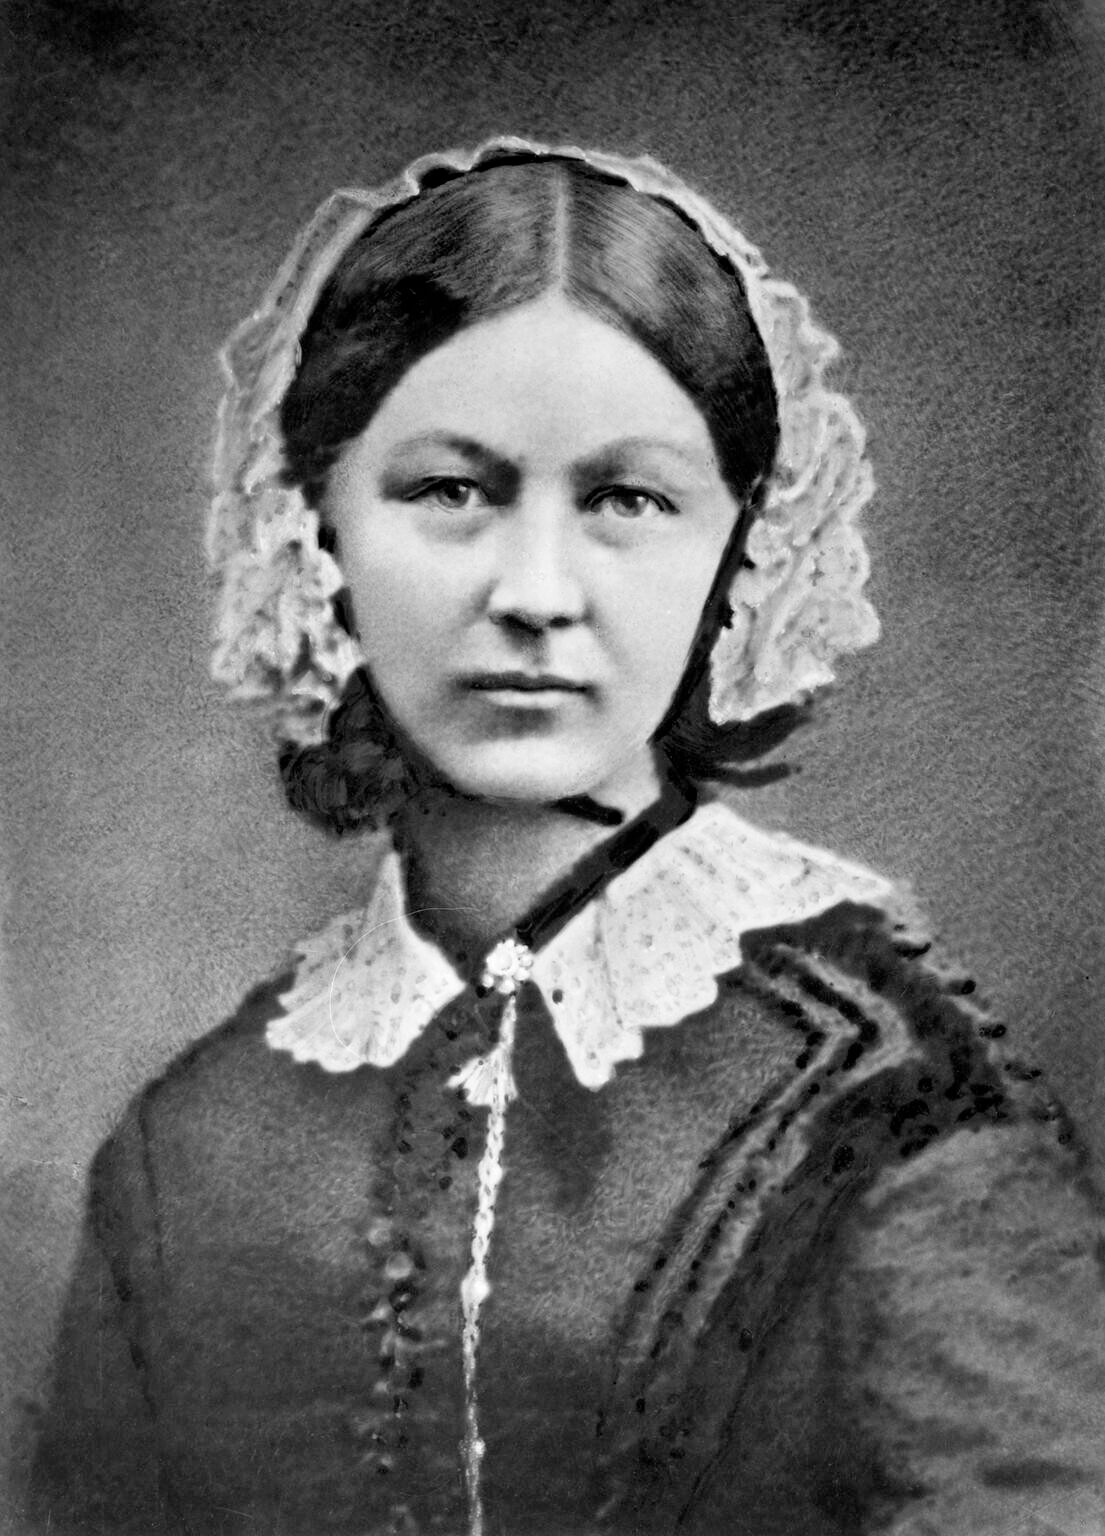 Florence Nightingale in a nurse uniform